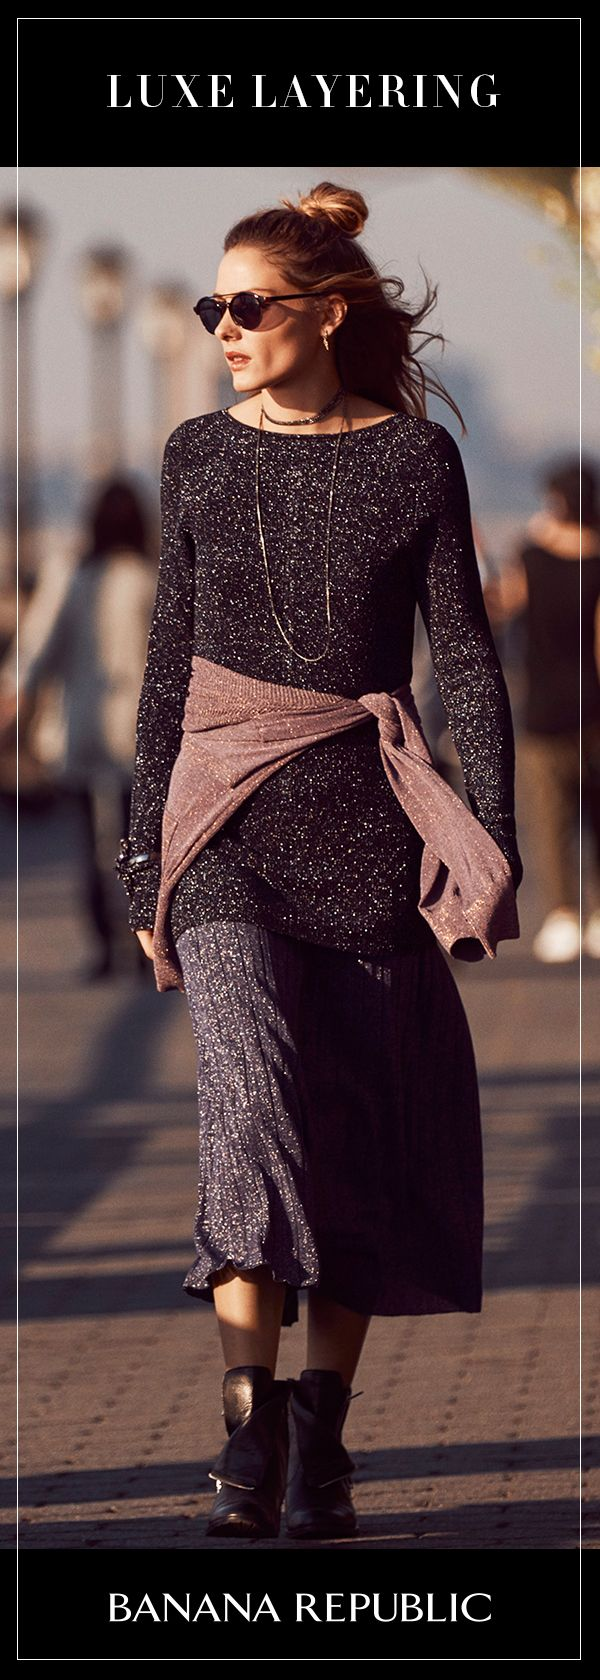 Luxe Layering – Embrace layering to make an outfit more than the sum of its parts with our metallic ribbed boatneck tunic. This fitted piece is made with an eye-catching shine fabric that's still soft. Featuring Banana Republic's Global Style Ambassador Olivia Palermo. Shop Olivia's Picks